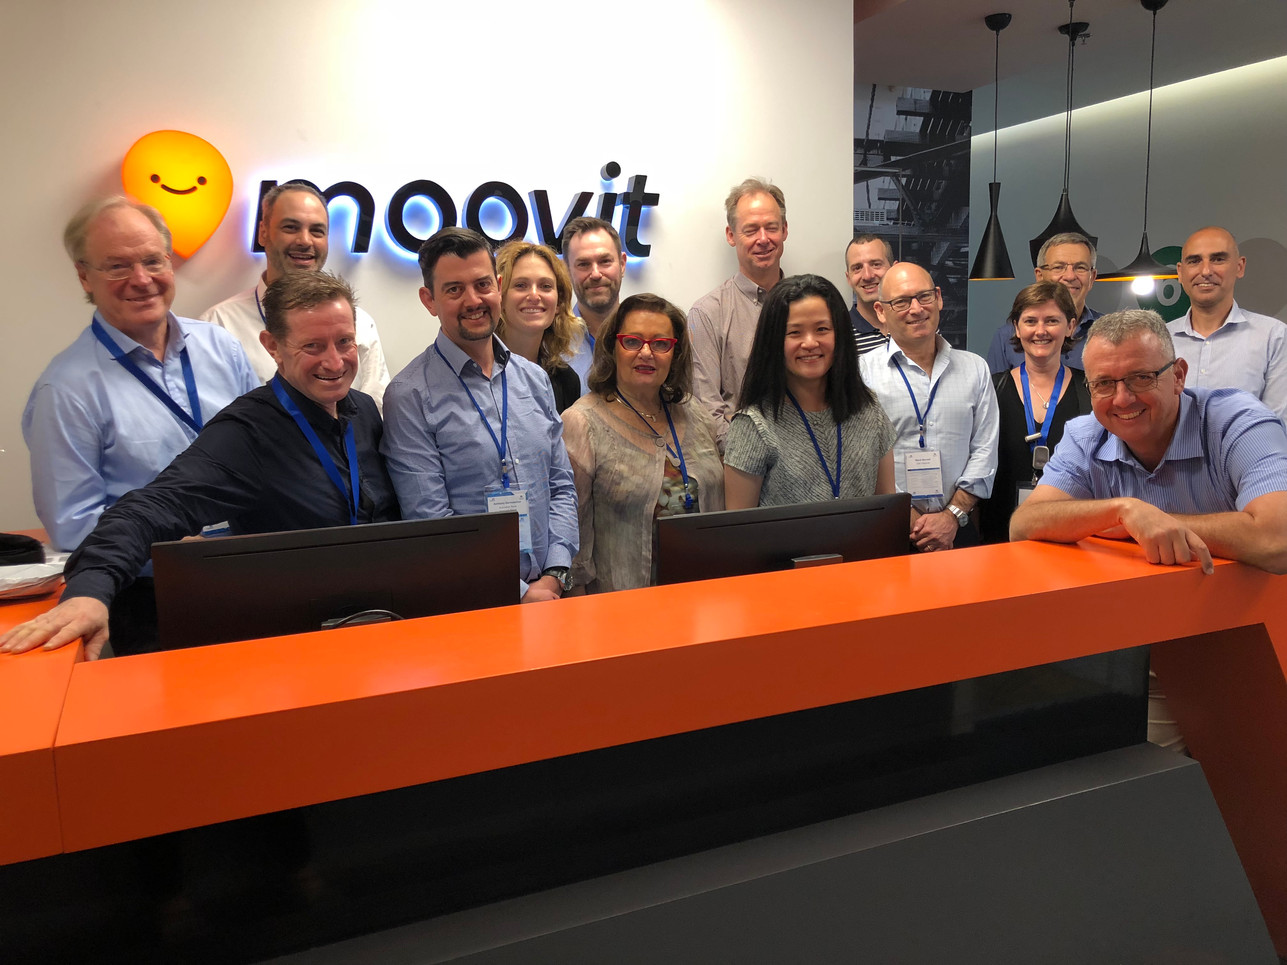 AICC (VIC) Infrastructure & Transport Technologies Mission led by Richard Bolt @ Moovit